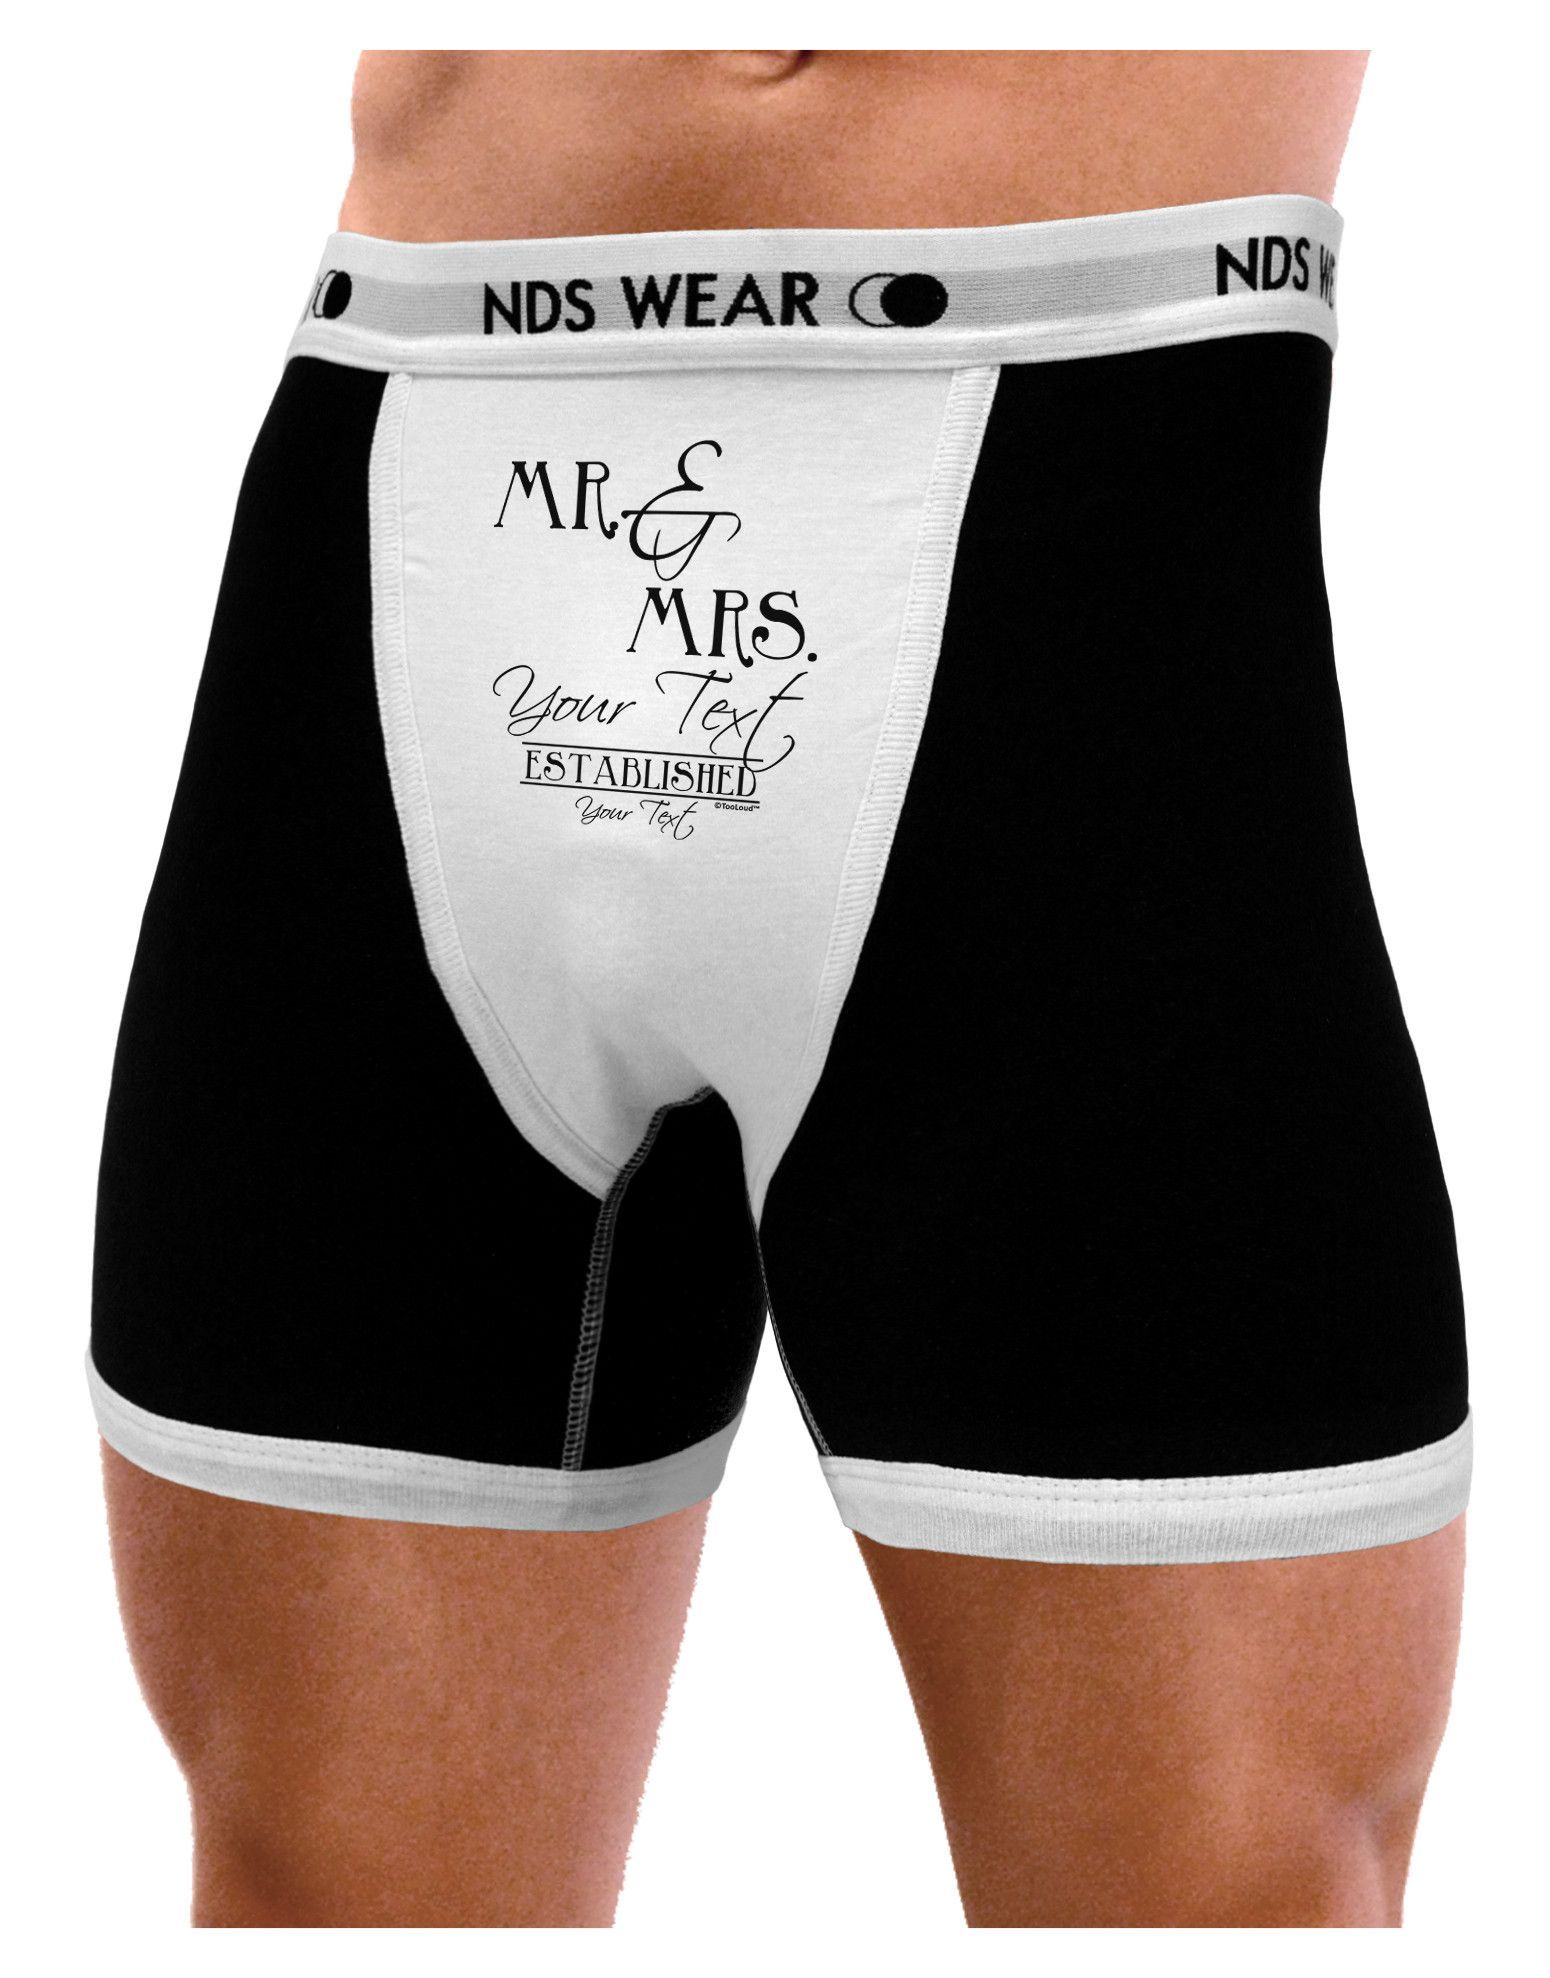 Boxer briefs dating